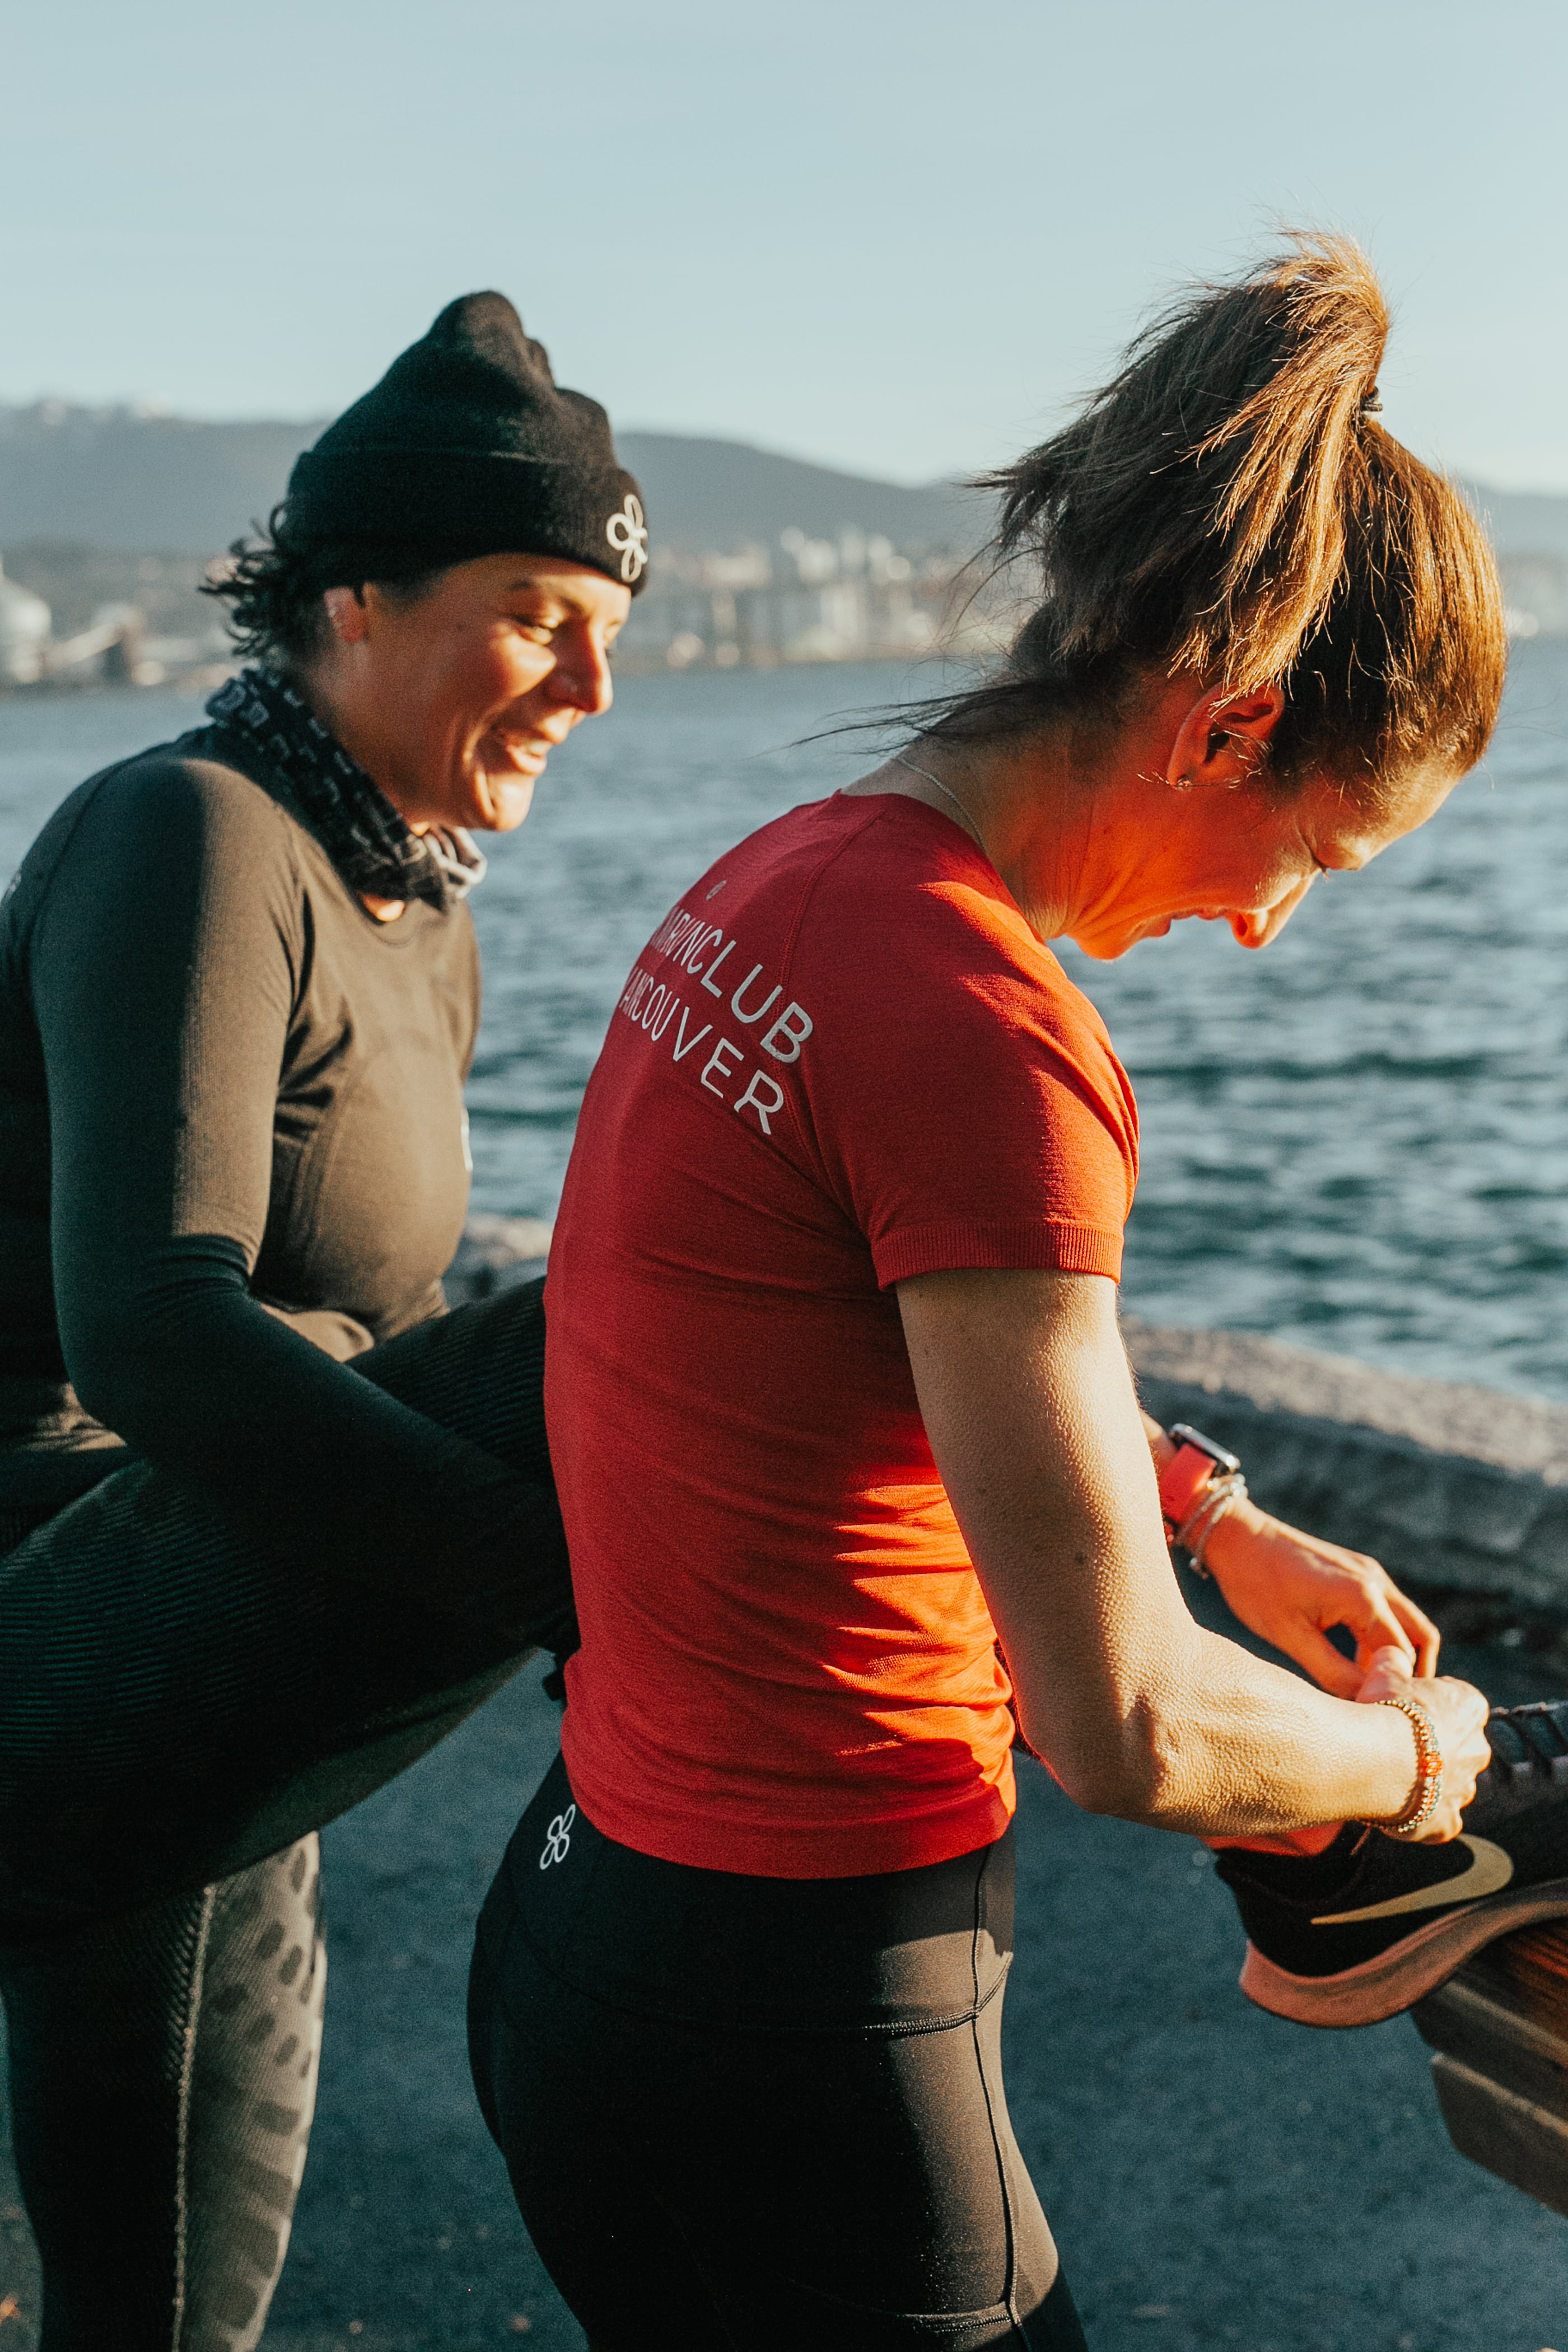 Woman helping tie another womans shoe